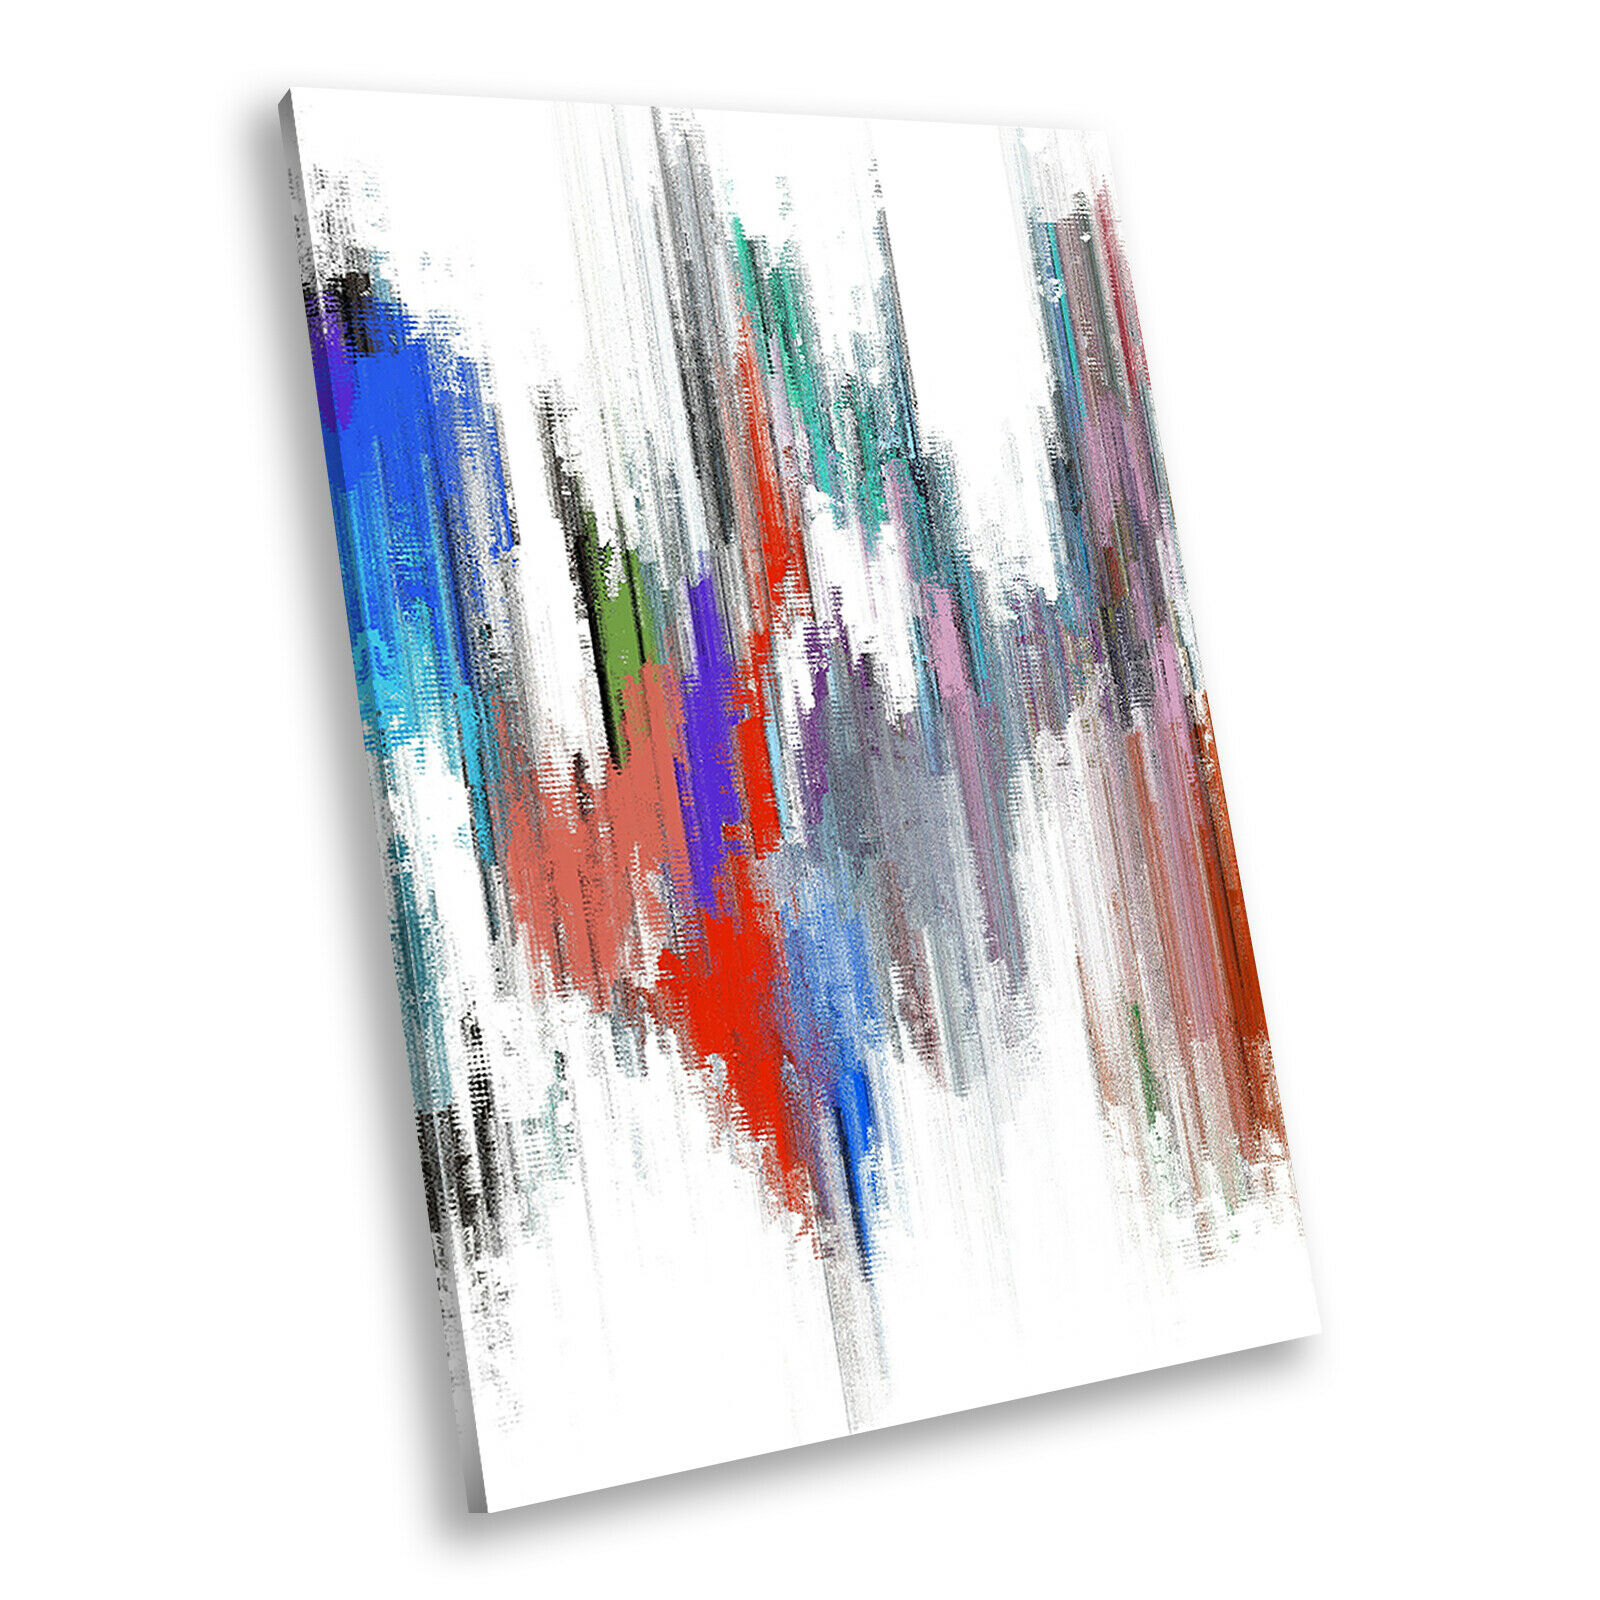 Grün rot Blau Weiß Portrait Abstract Canvas Wall Art Large Picture Prints